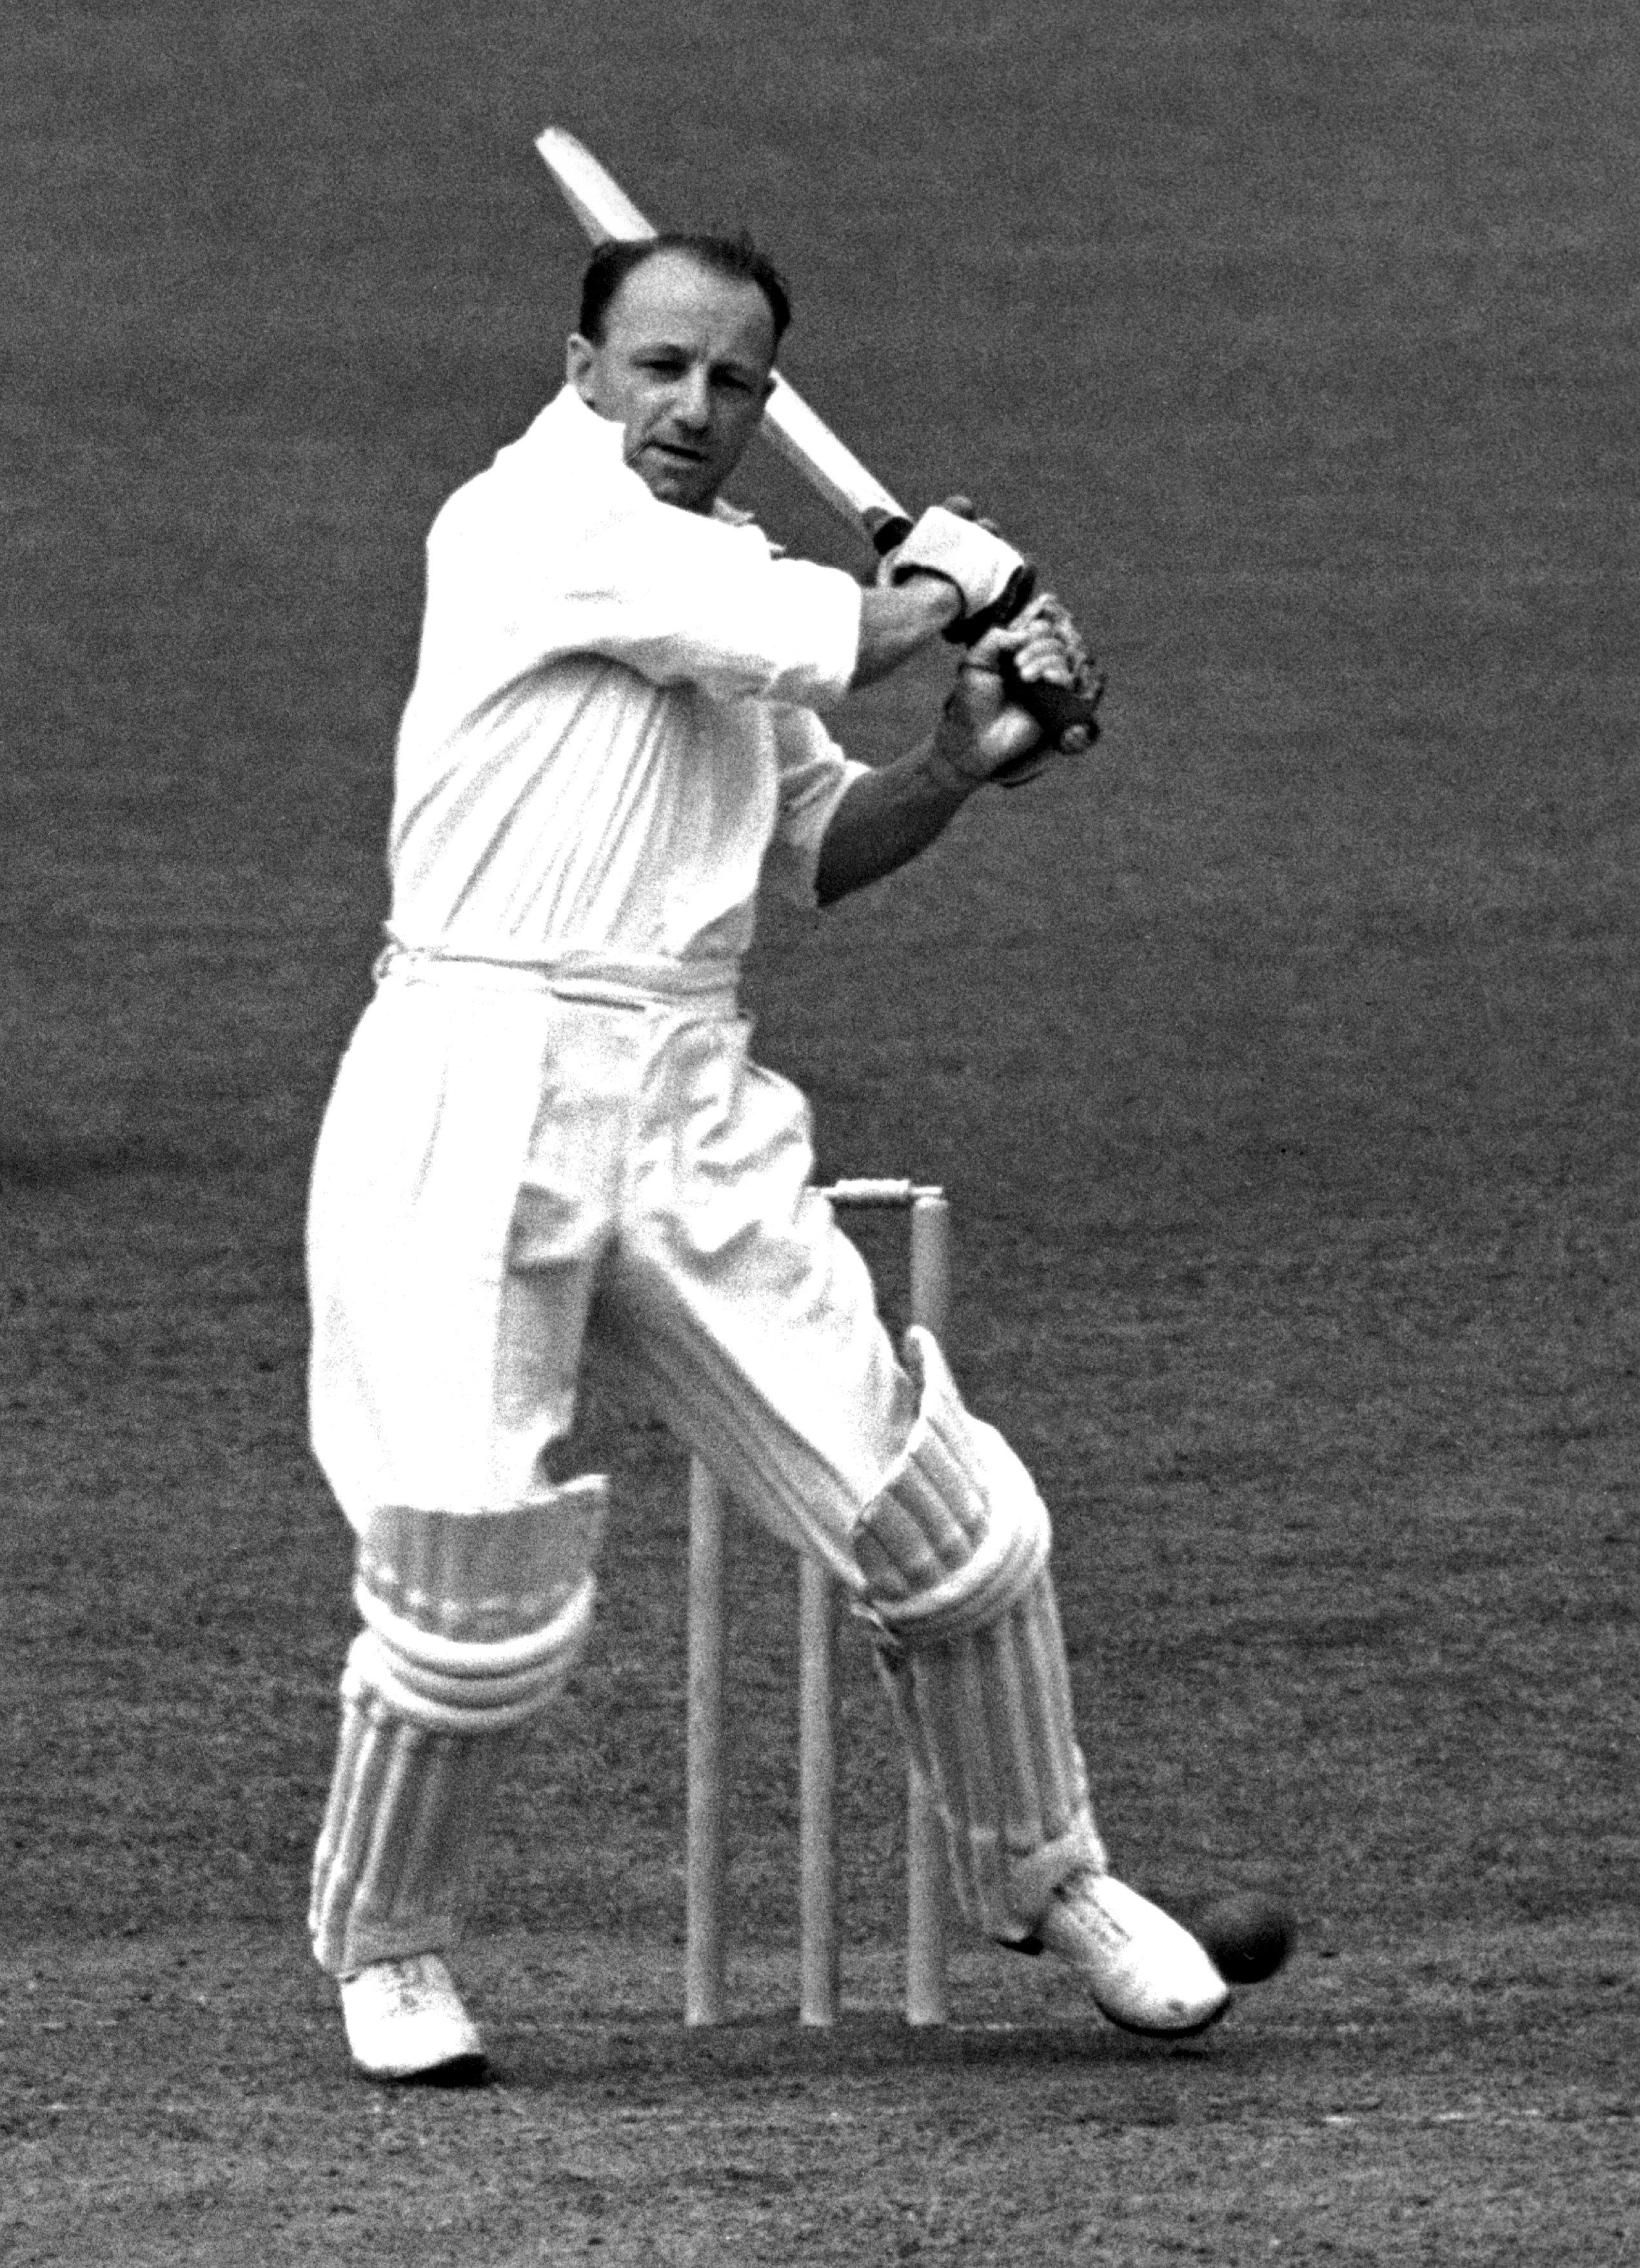 Donald Bradman retired from Test cricket with a batting average of 99.94